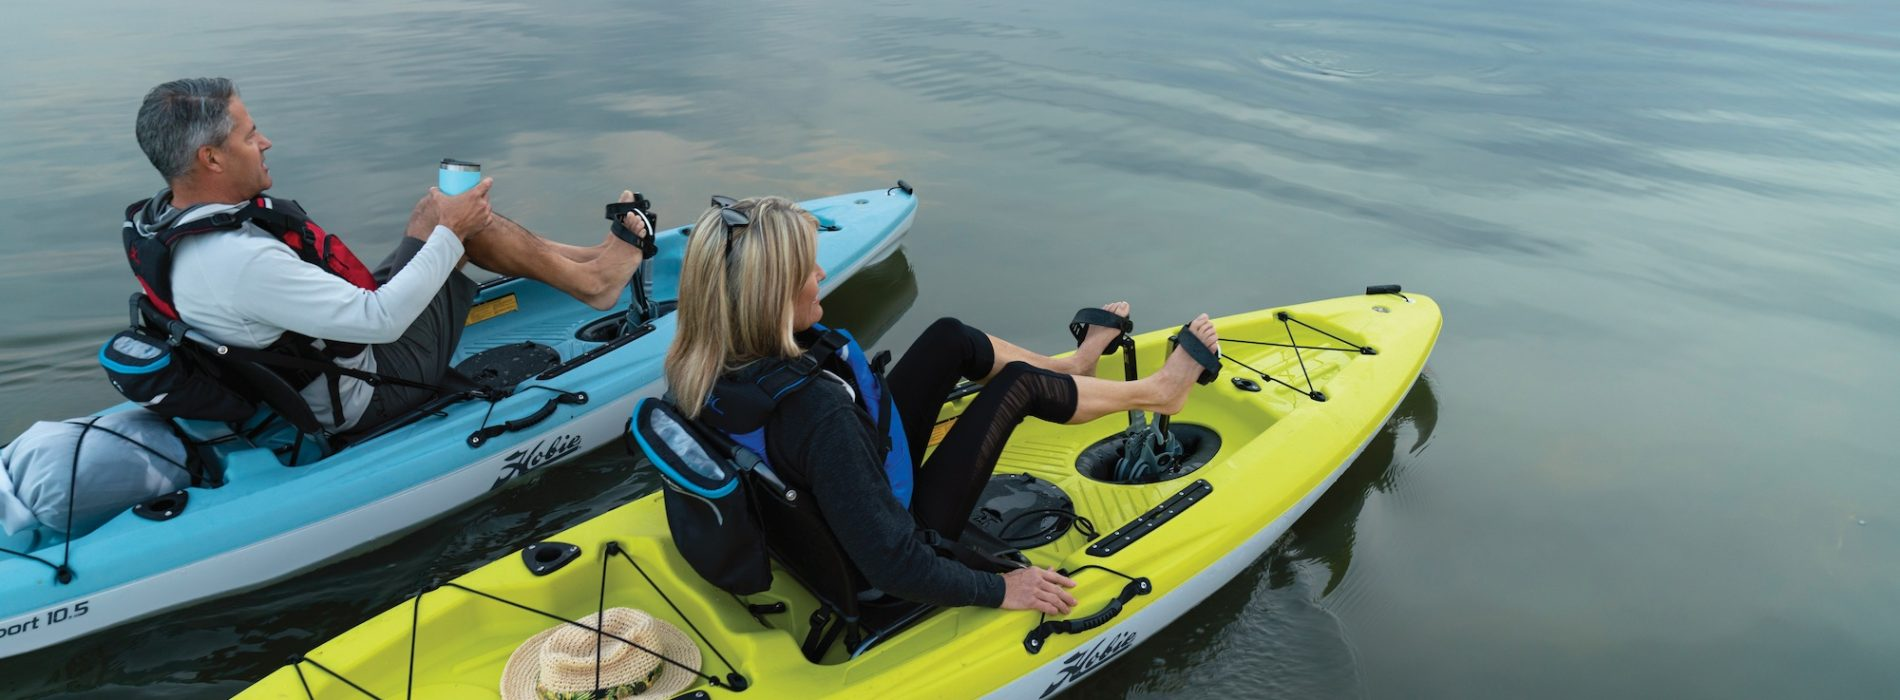 Maneuver over water with Pedal Fishing Kayak